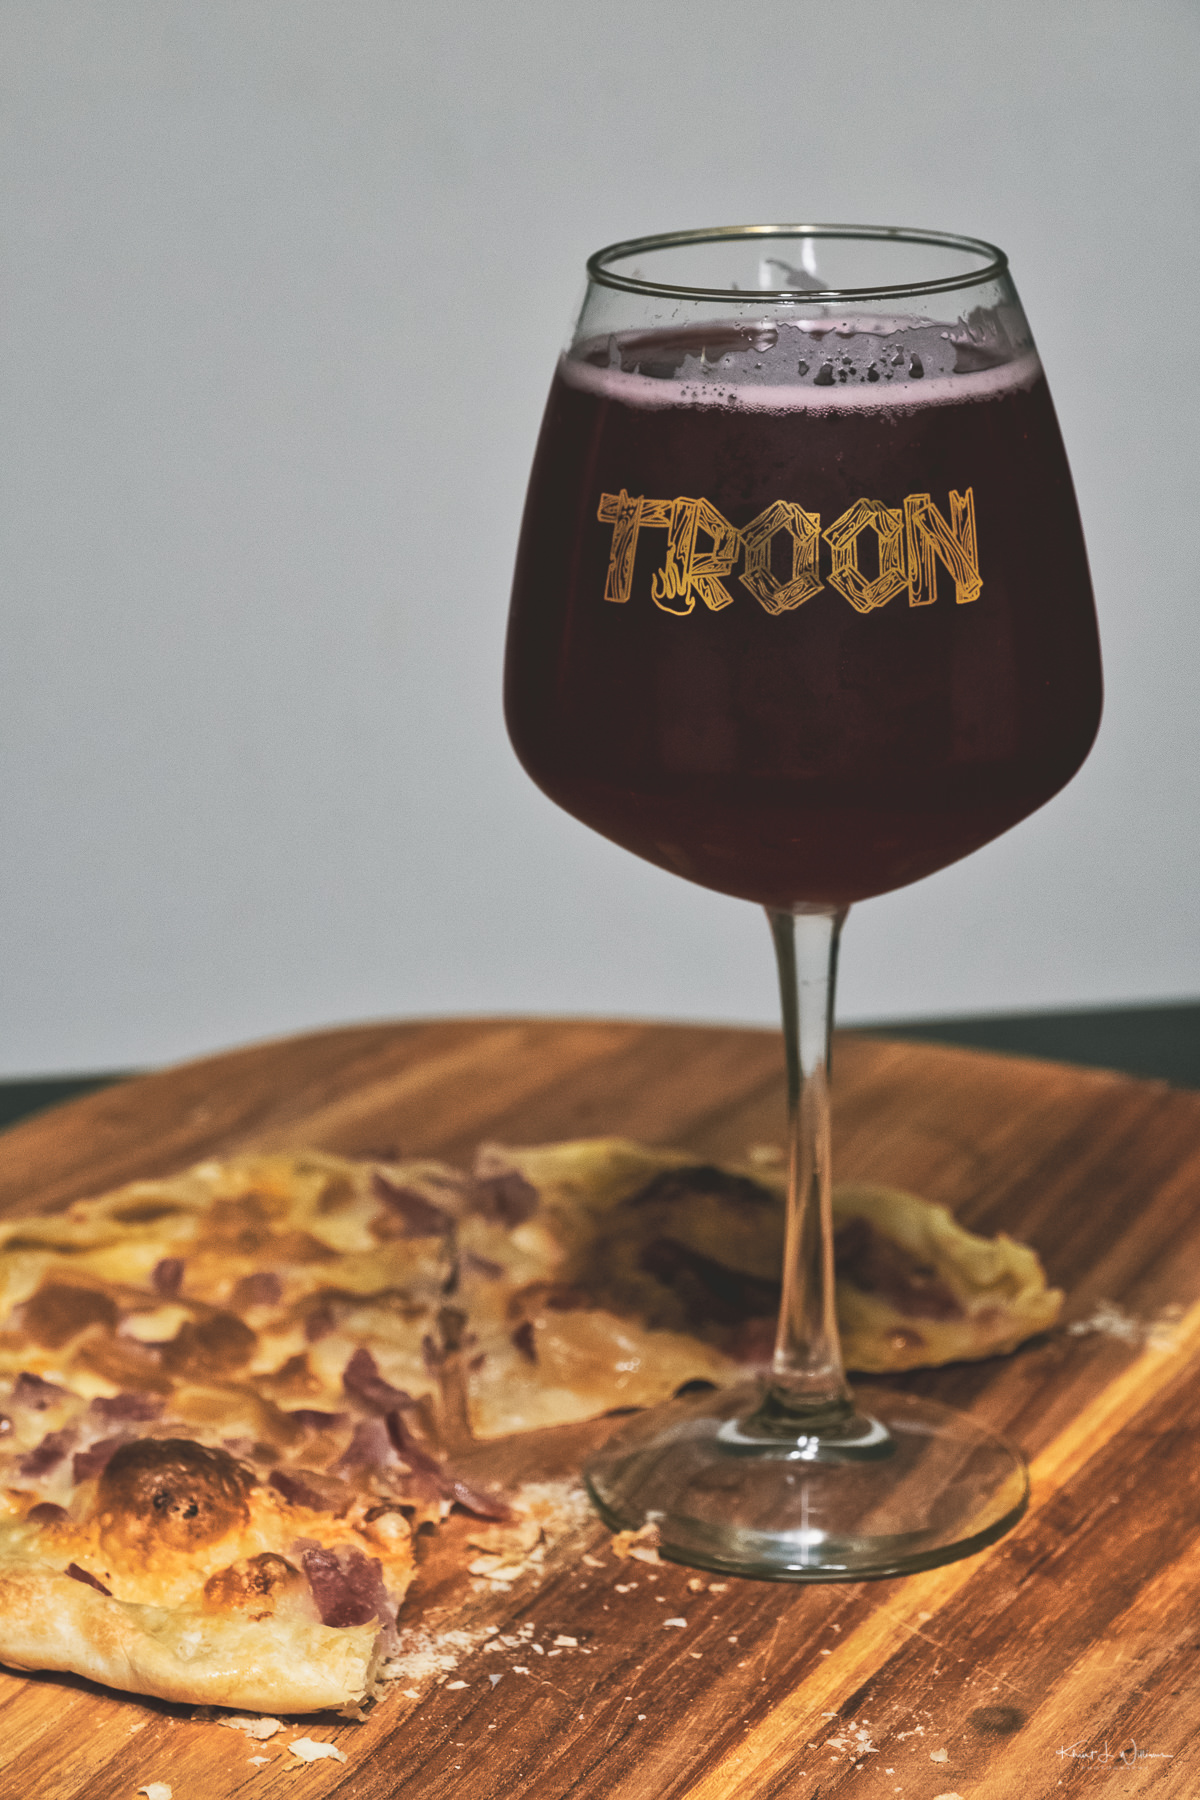 <span class='p-name'>Troon Brewing Sacrificial Lamb</span>